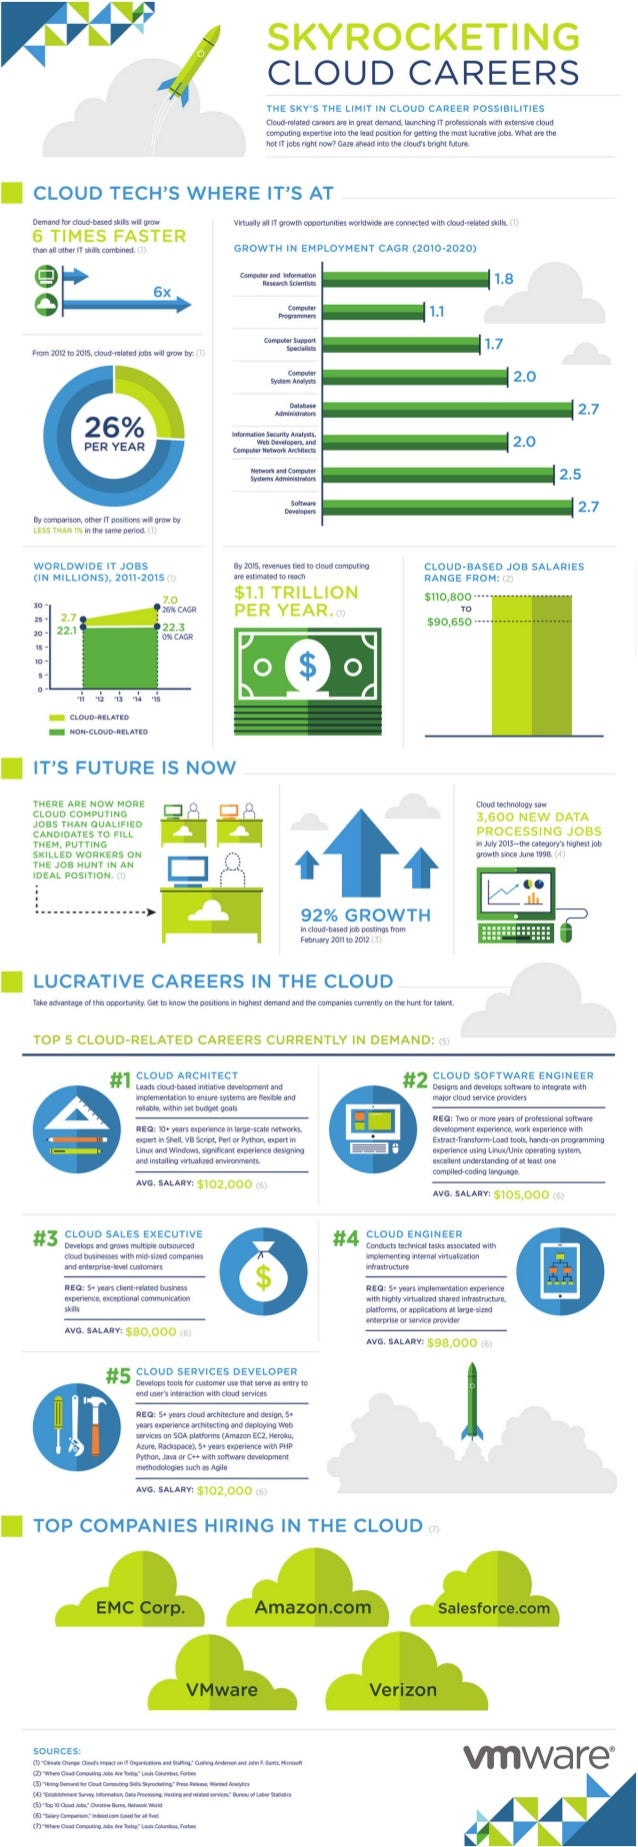 VMware Cloud Careers